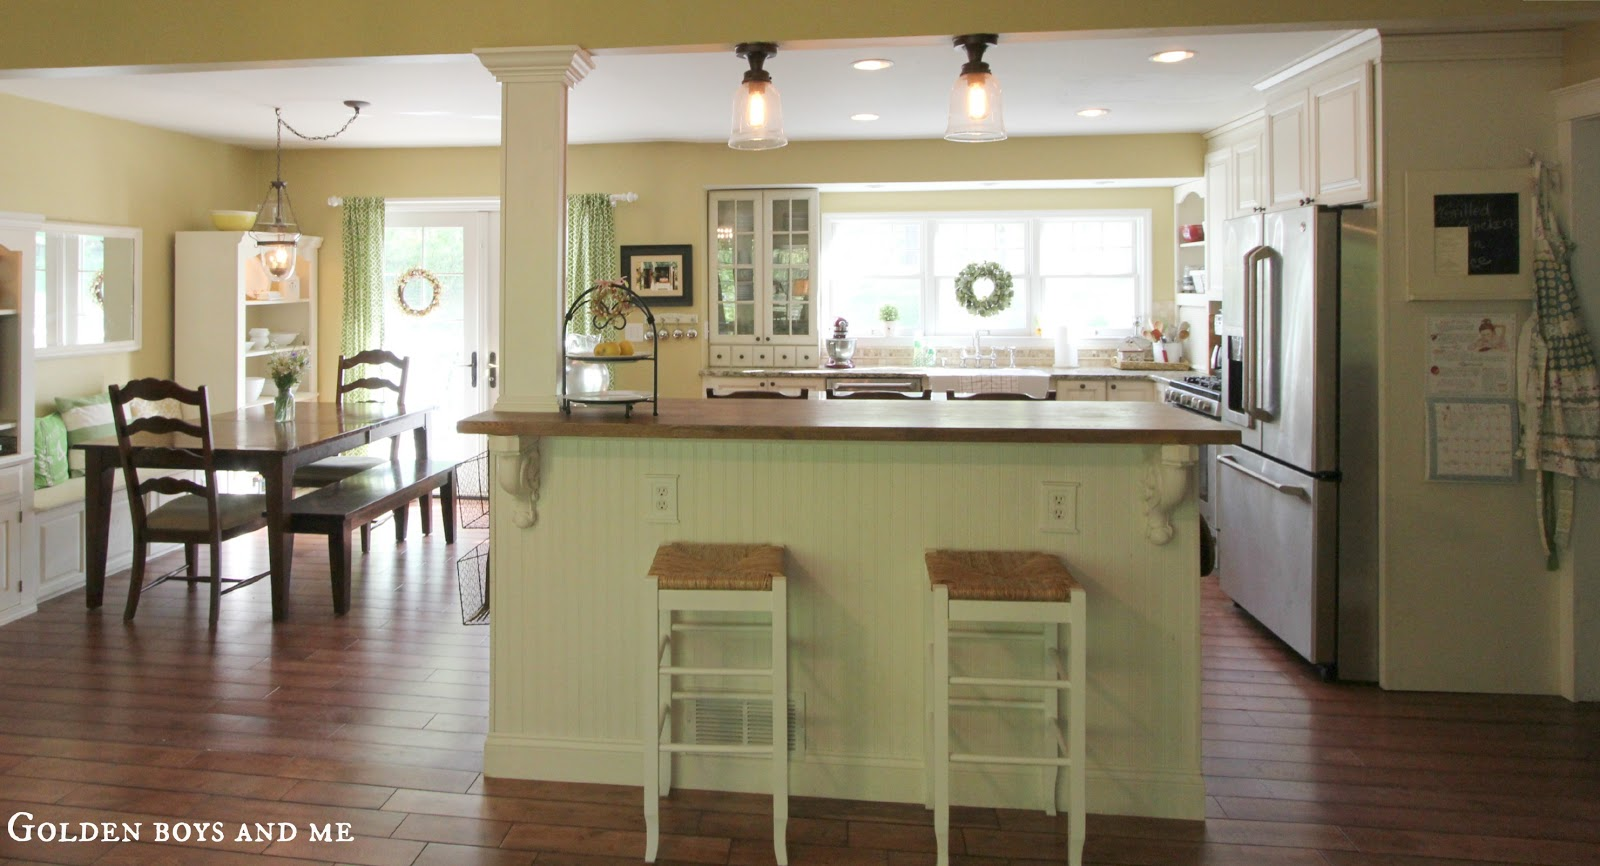 Golden boys and me kitchen island ikea hack - Kitchen island with post ...